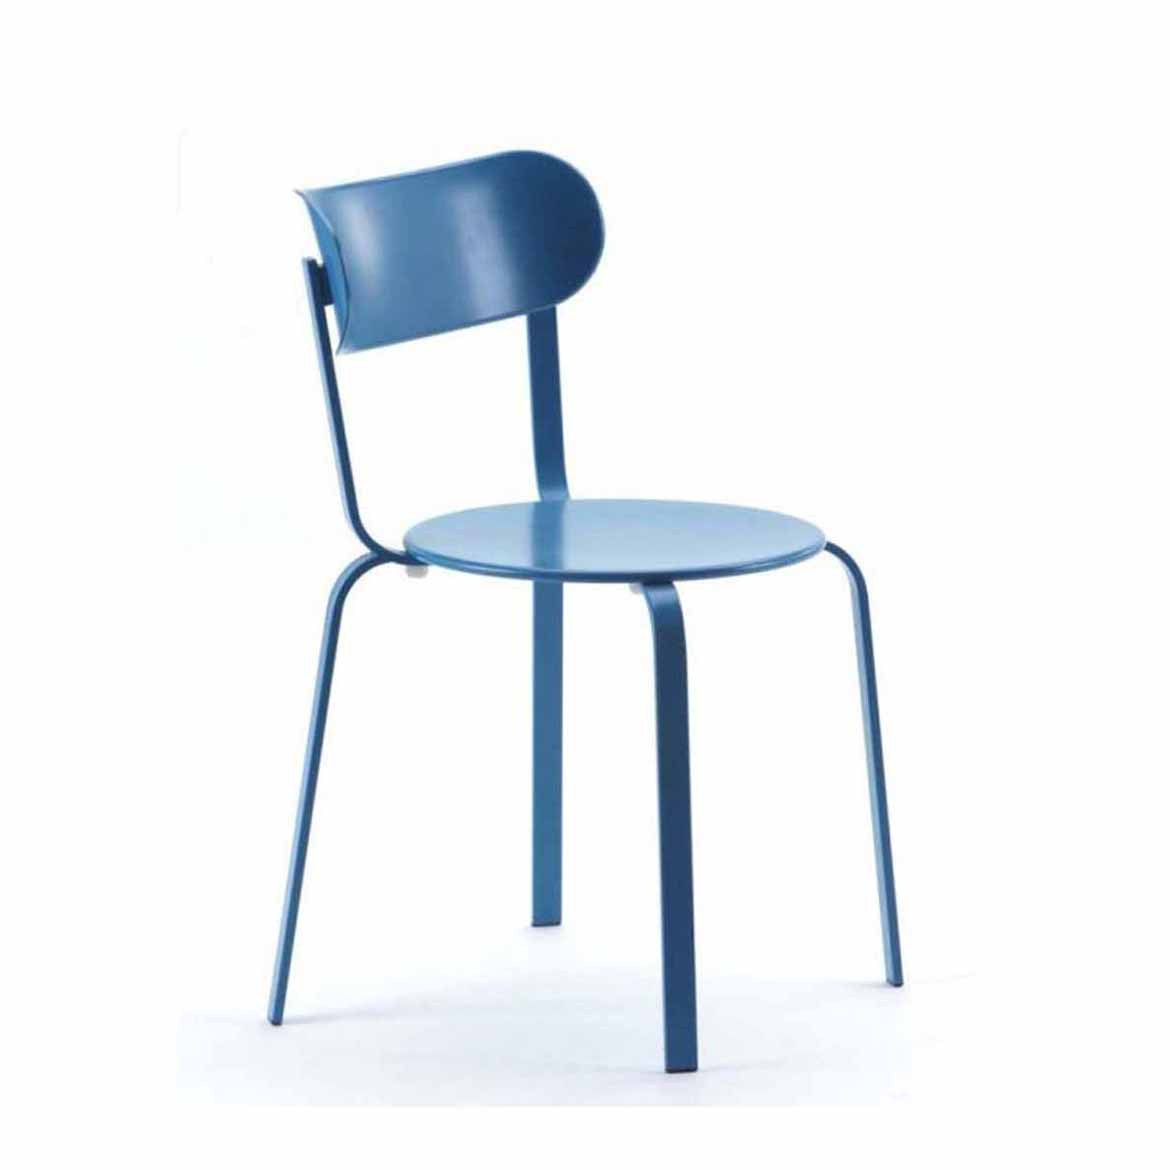 Stackable chair in powder coated metal: also available with thermoformed seat-pad in anthracite colour. Glides in polythene. A stool is available in two fix heights.